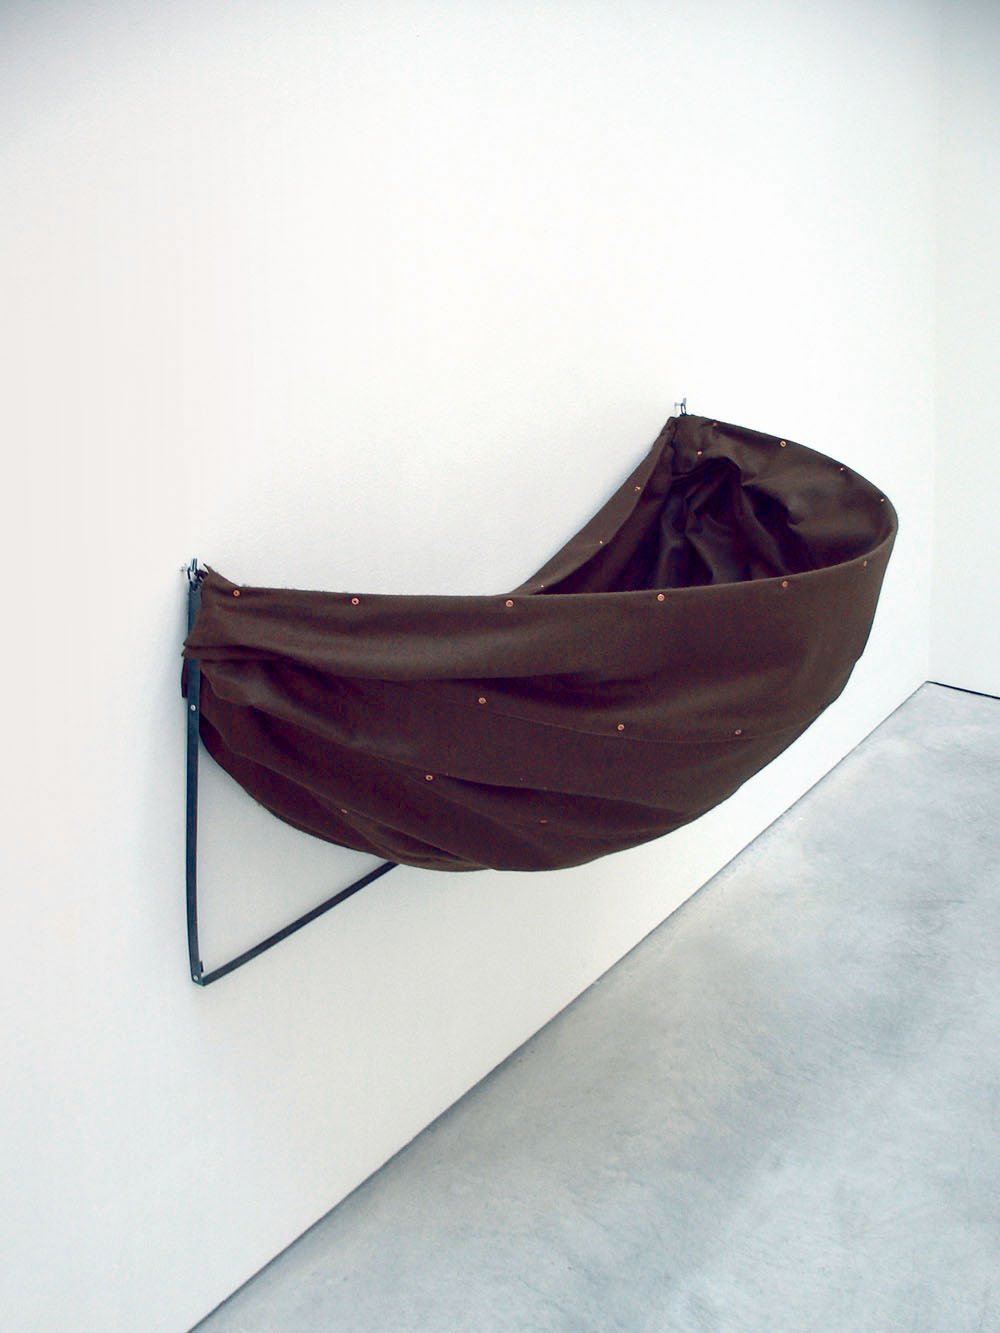 , or Good Conduct Well Chastised, 2009, felt, steel, copper, 50 x 100 x 50 cm